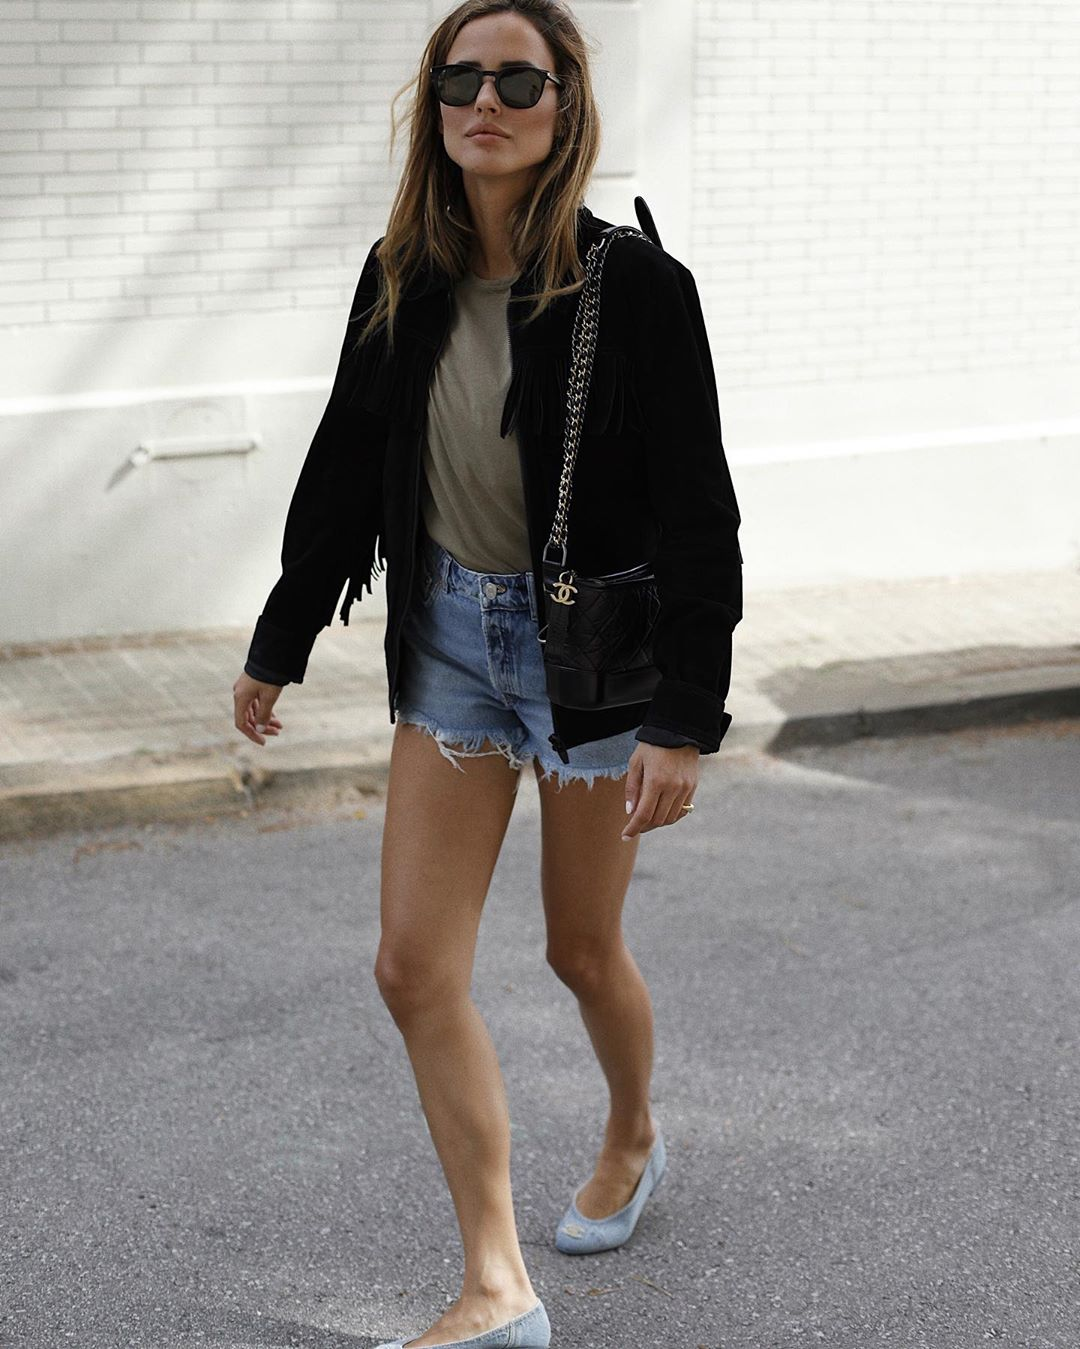 How to Wear Cutoff Shorts for Fall — Alex Rivière in a black jacket, neutral t-shirt, and Chanel bag